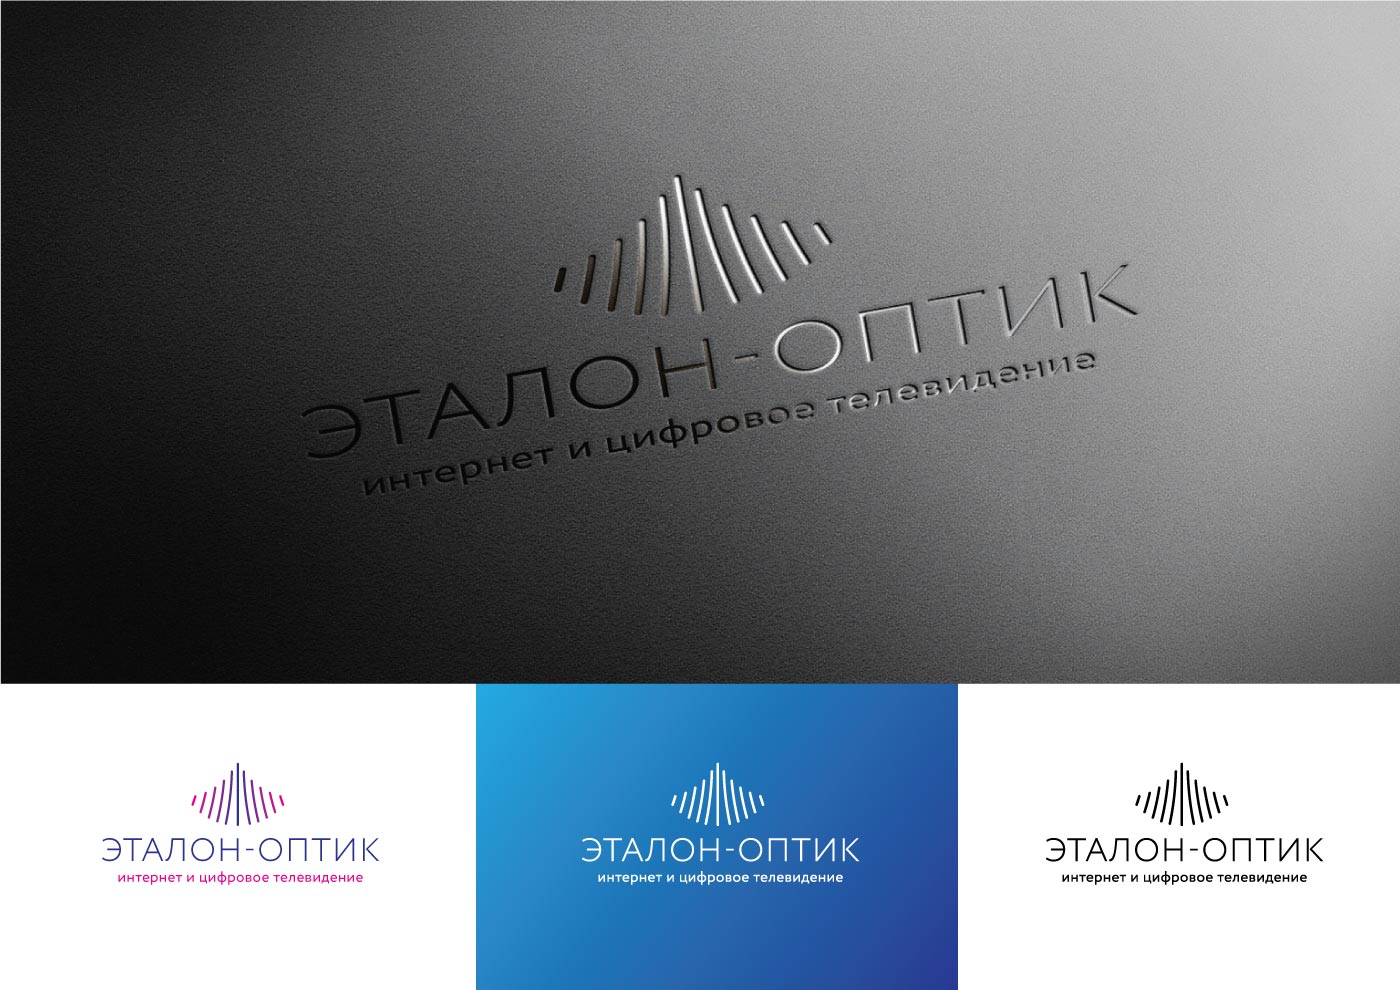 ondertekenen design en logo voor Etalon-Optic provider